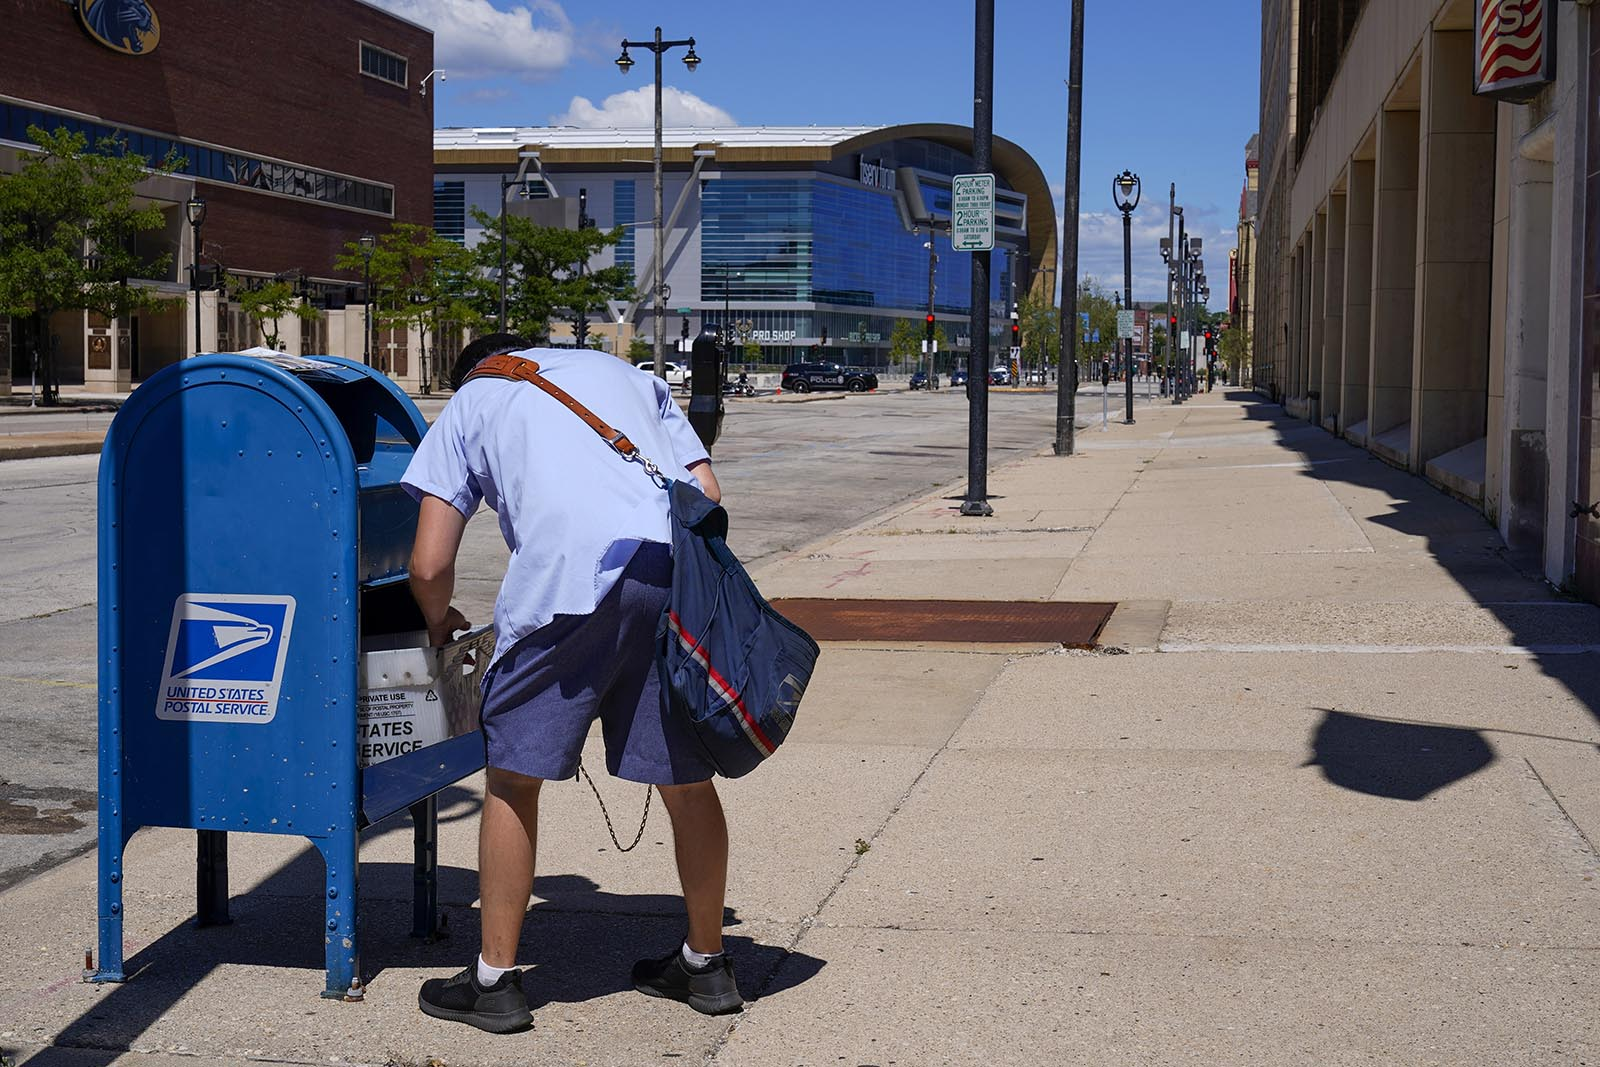 A postal worker empties a box near the Fiserv Forum on Tuesday, Aug. 18, in Milwaukee.